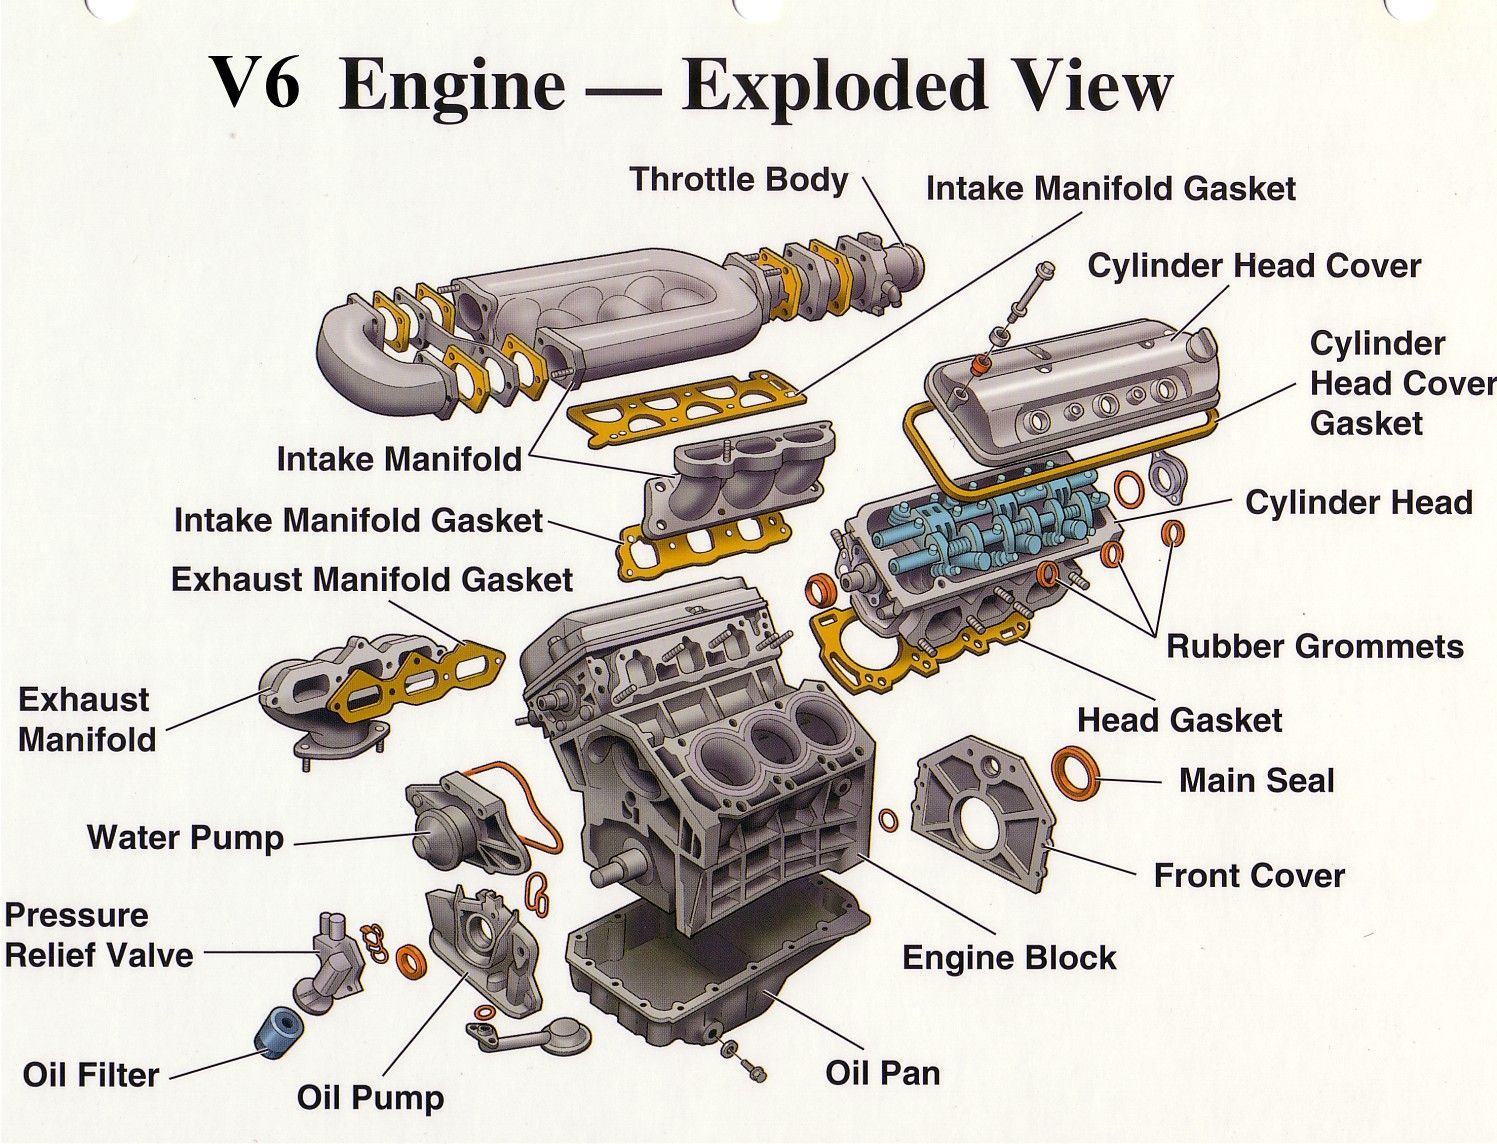 swengines here some ideas about engine diagram engine diagram what makes the engine tick hdabob com